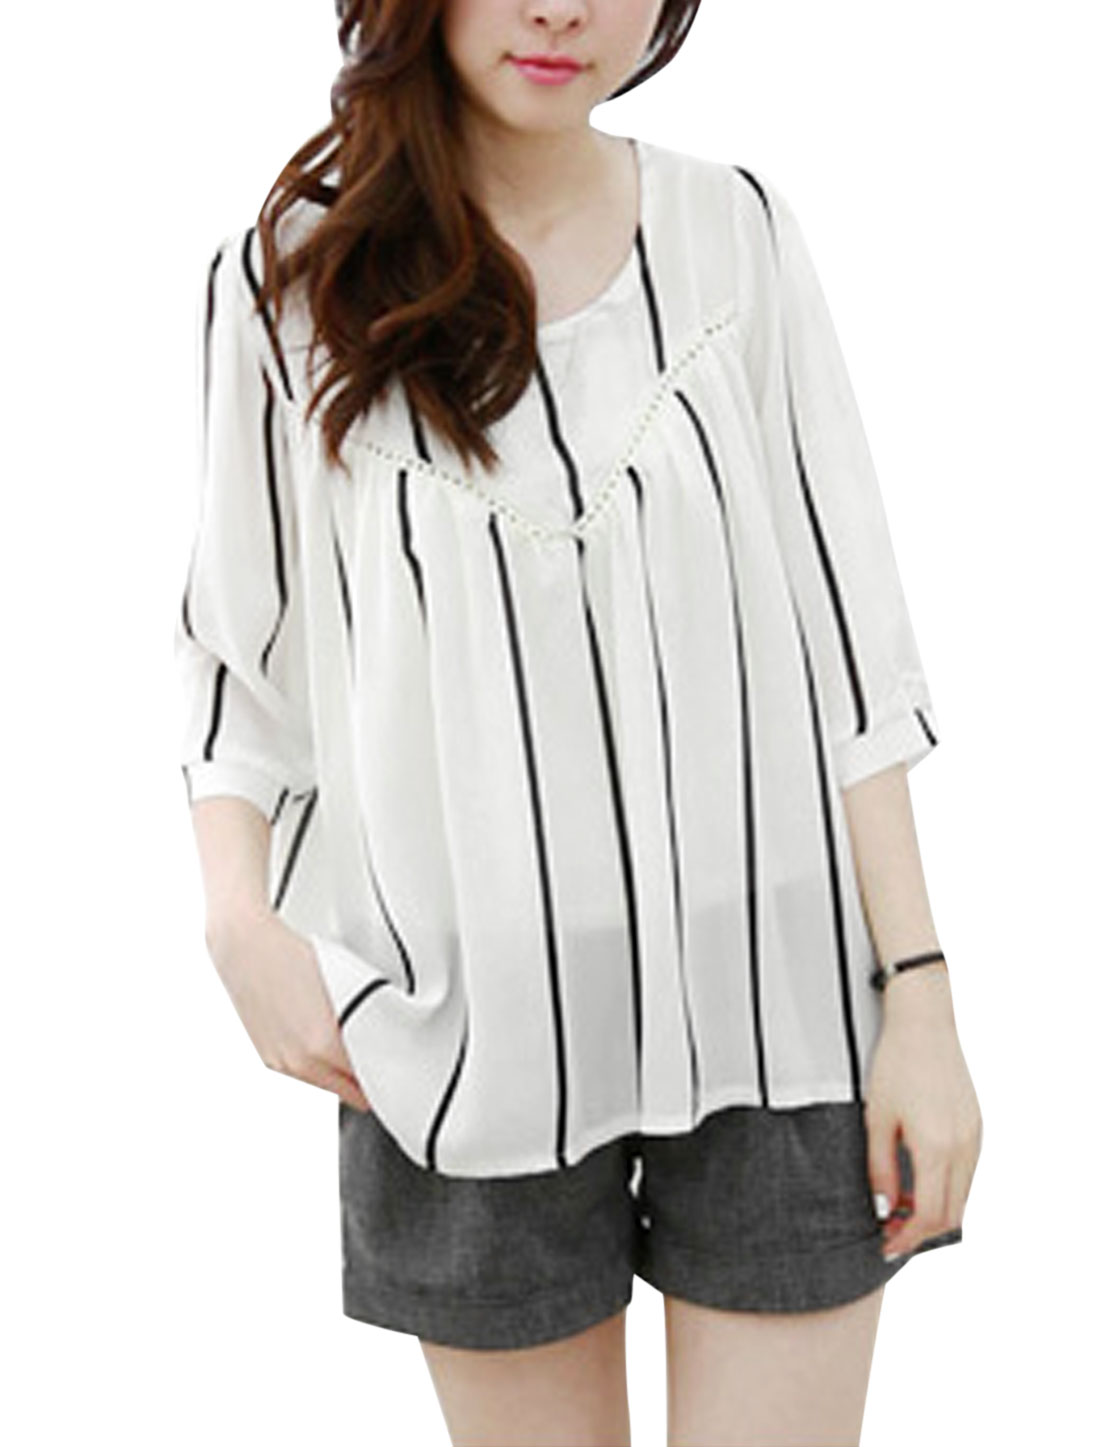 Lady Pullover Vertical Stripes 3/4 Sleeve Leisure Chiffon Top White XS